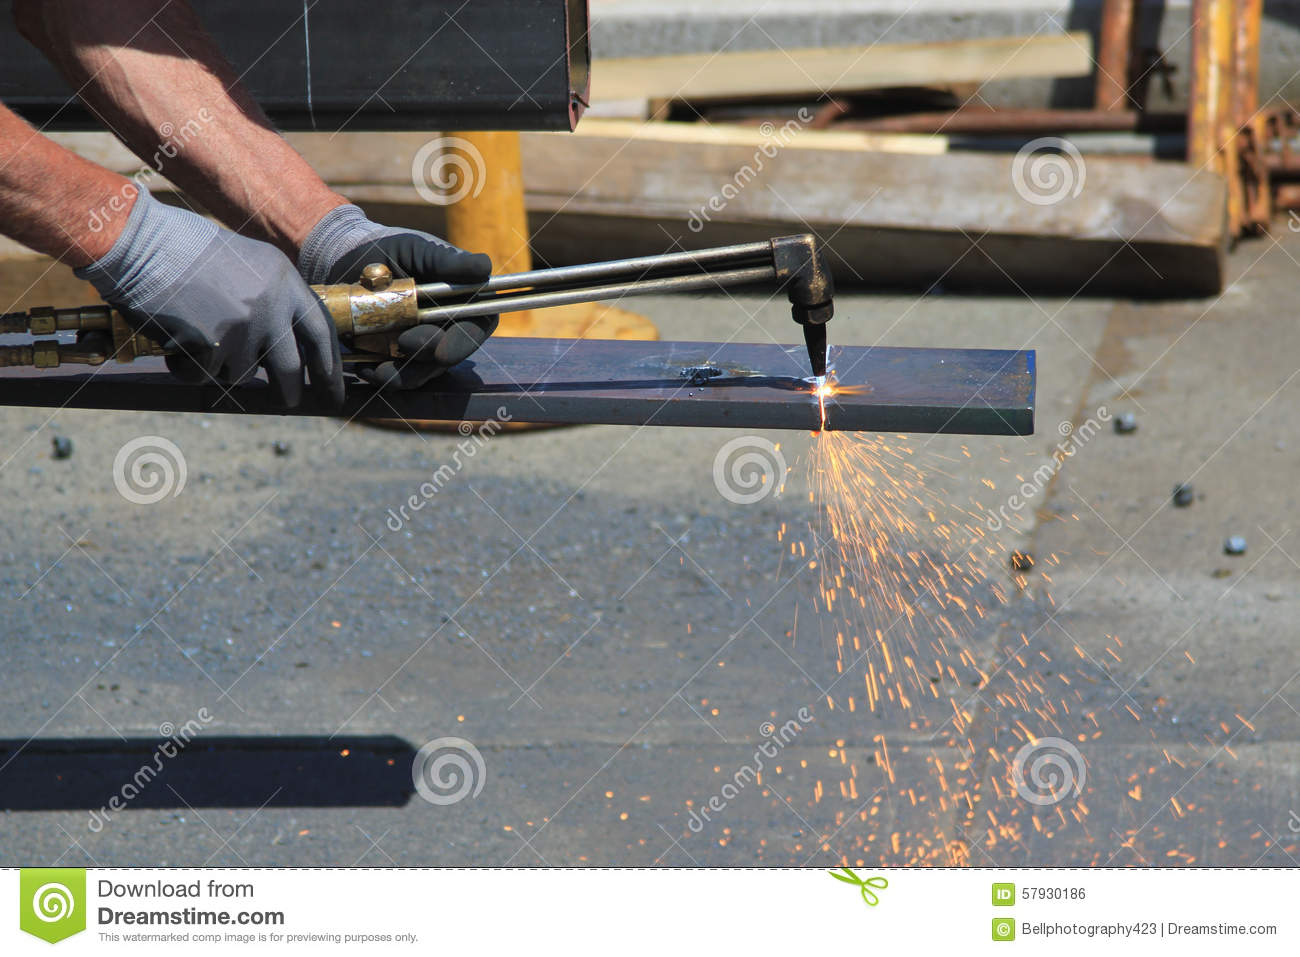 Welding With A Oxy Acetylene Cutting Torch Royalty Free Stock Photo Equipment Diagram 57686181